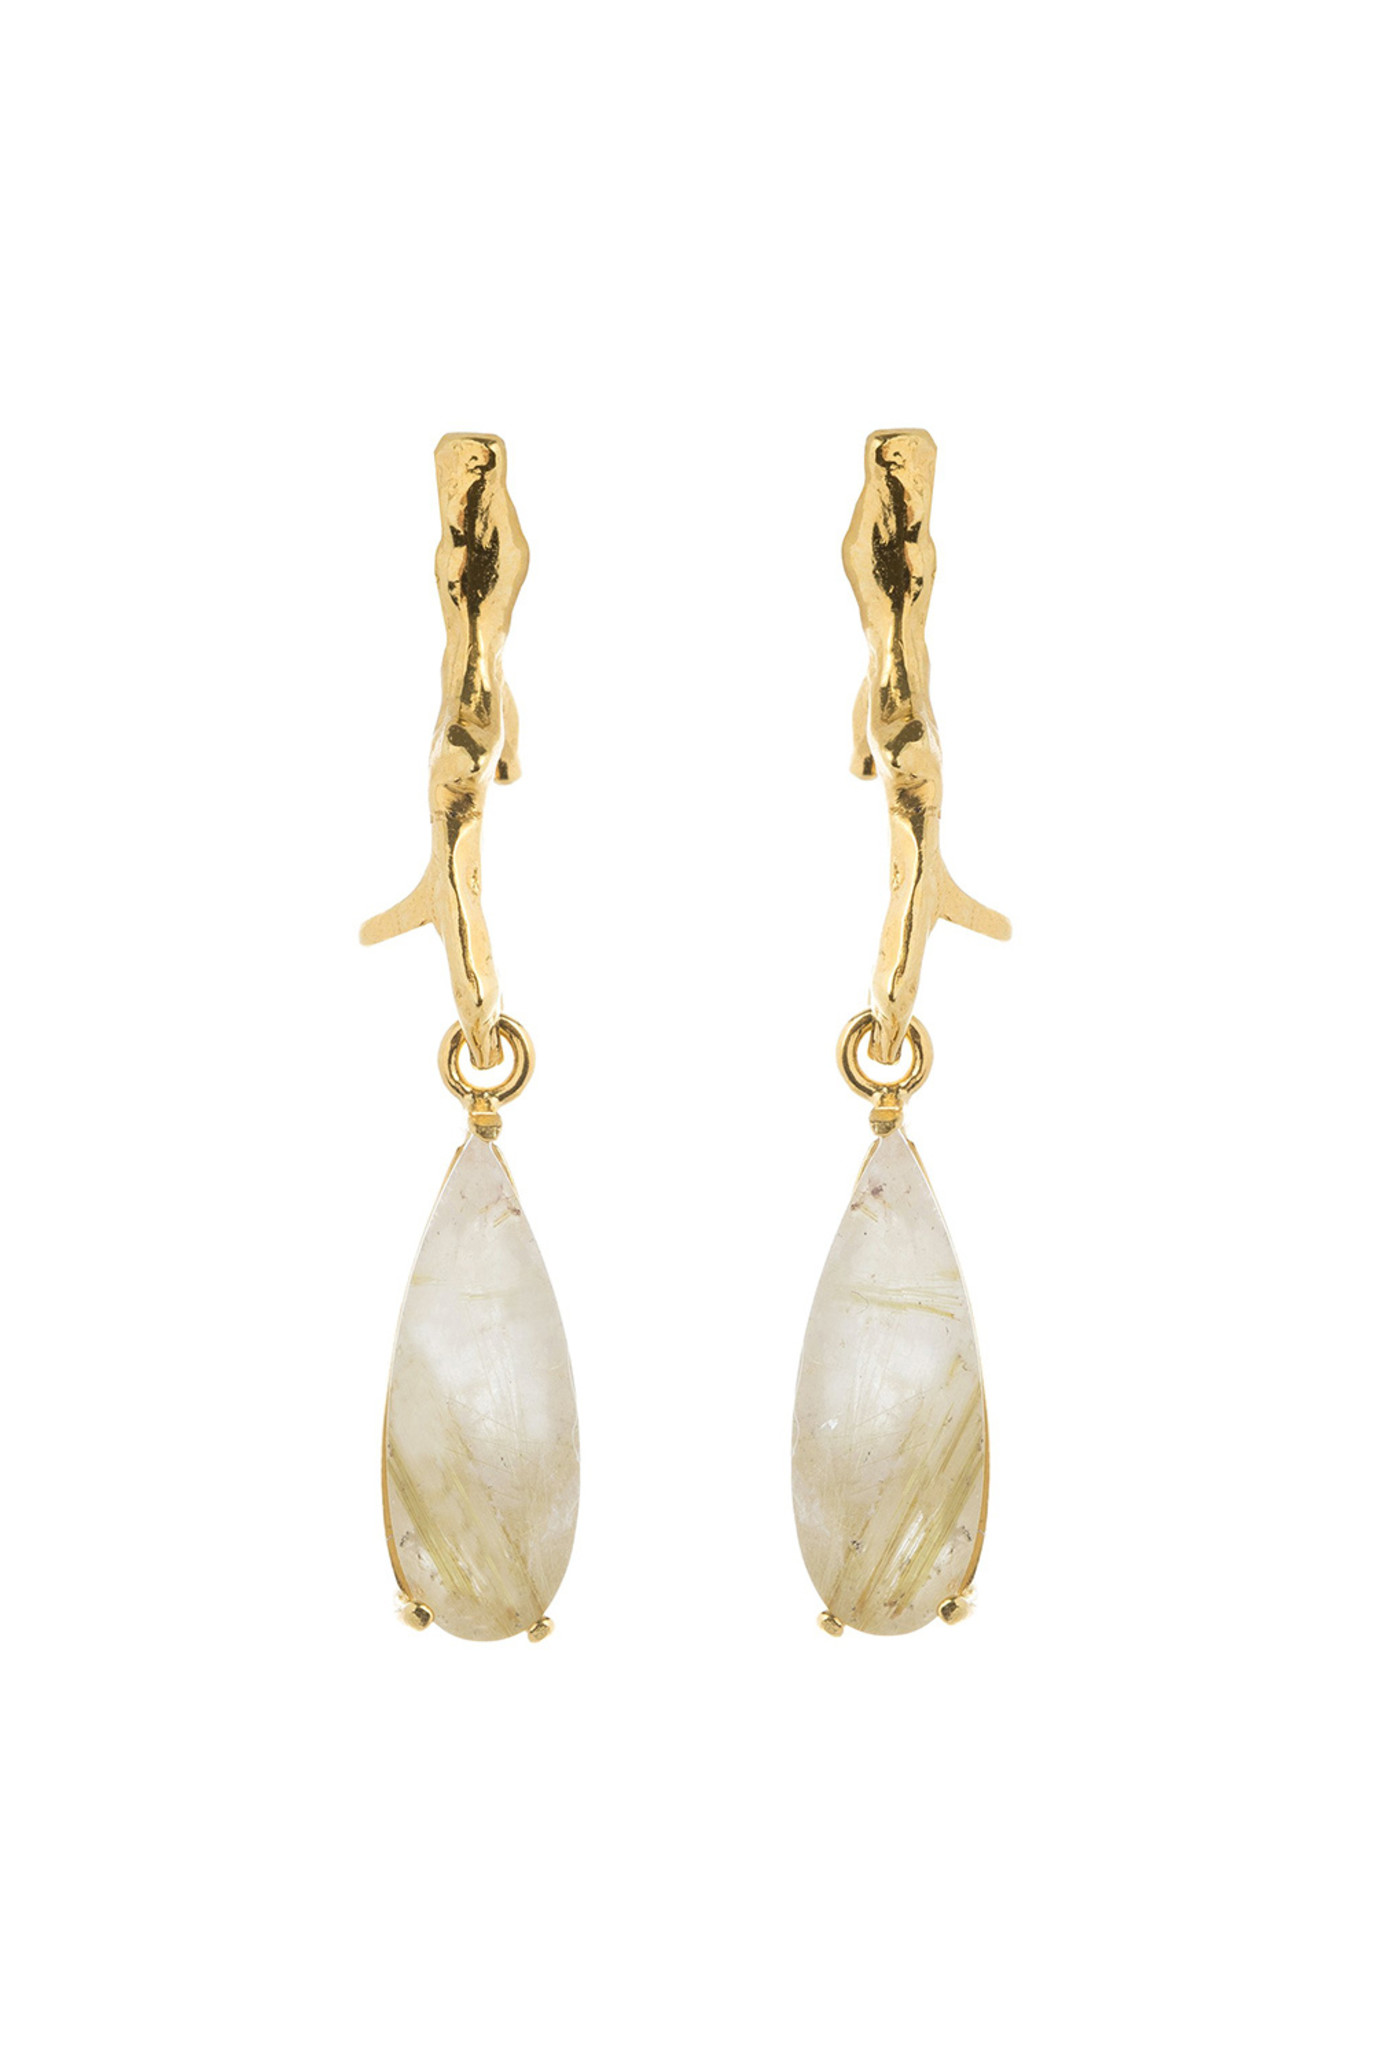 Golden rutilated quartz  branch earrings goldplated